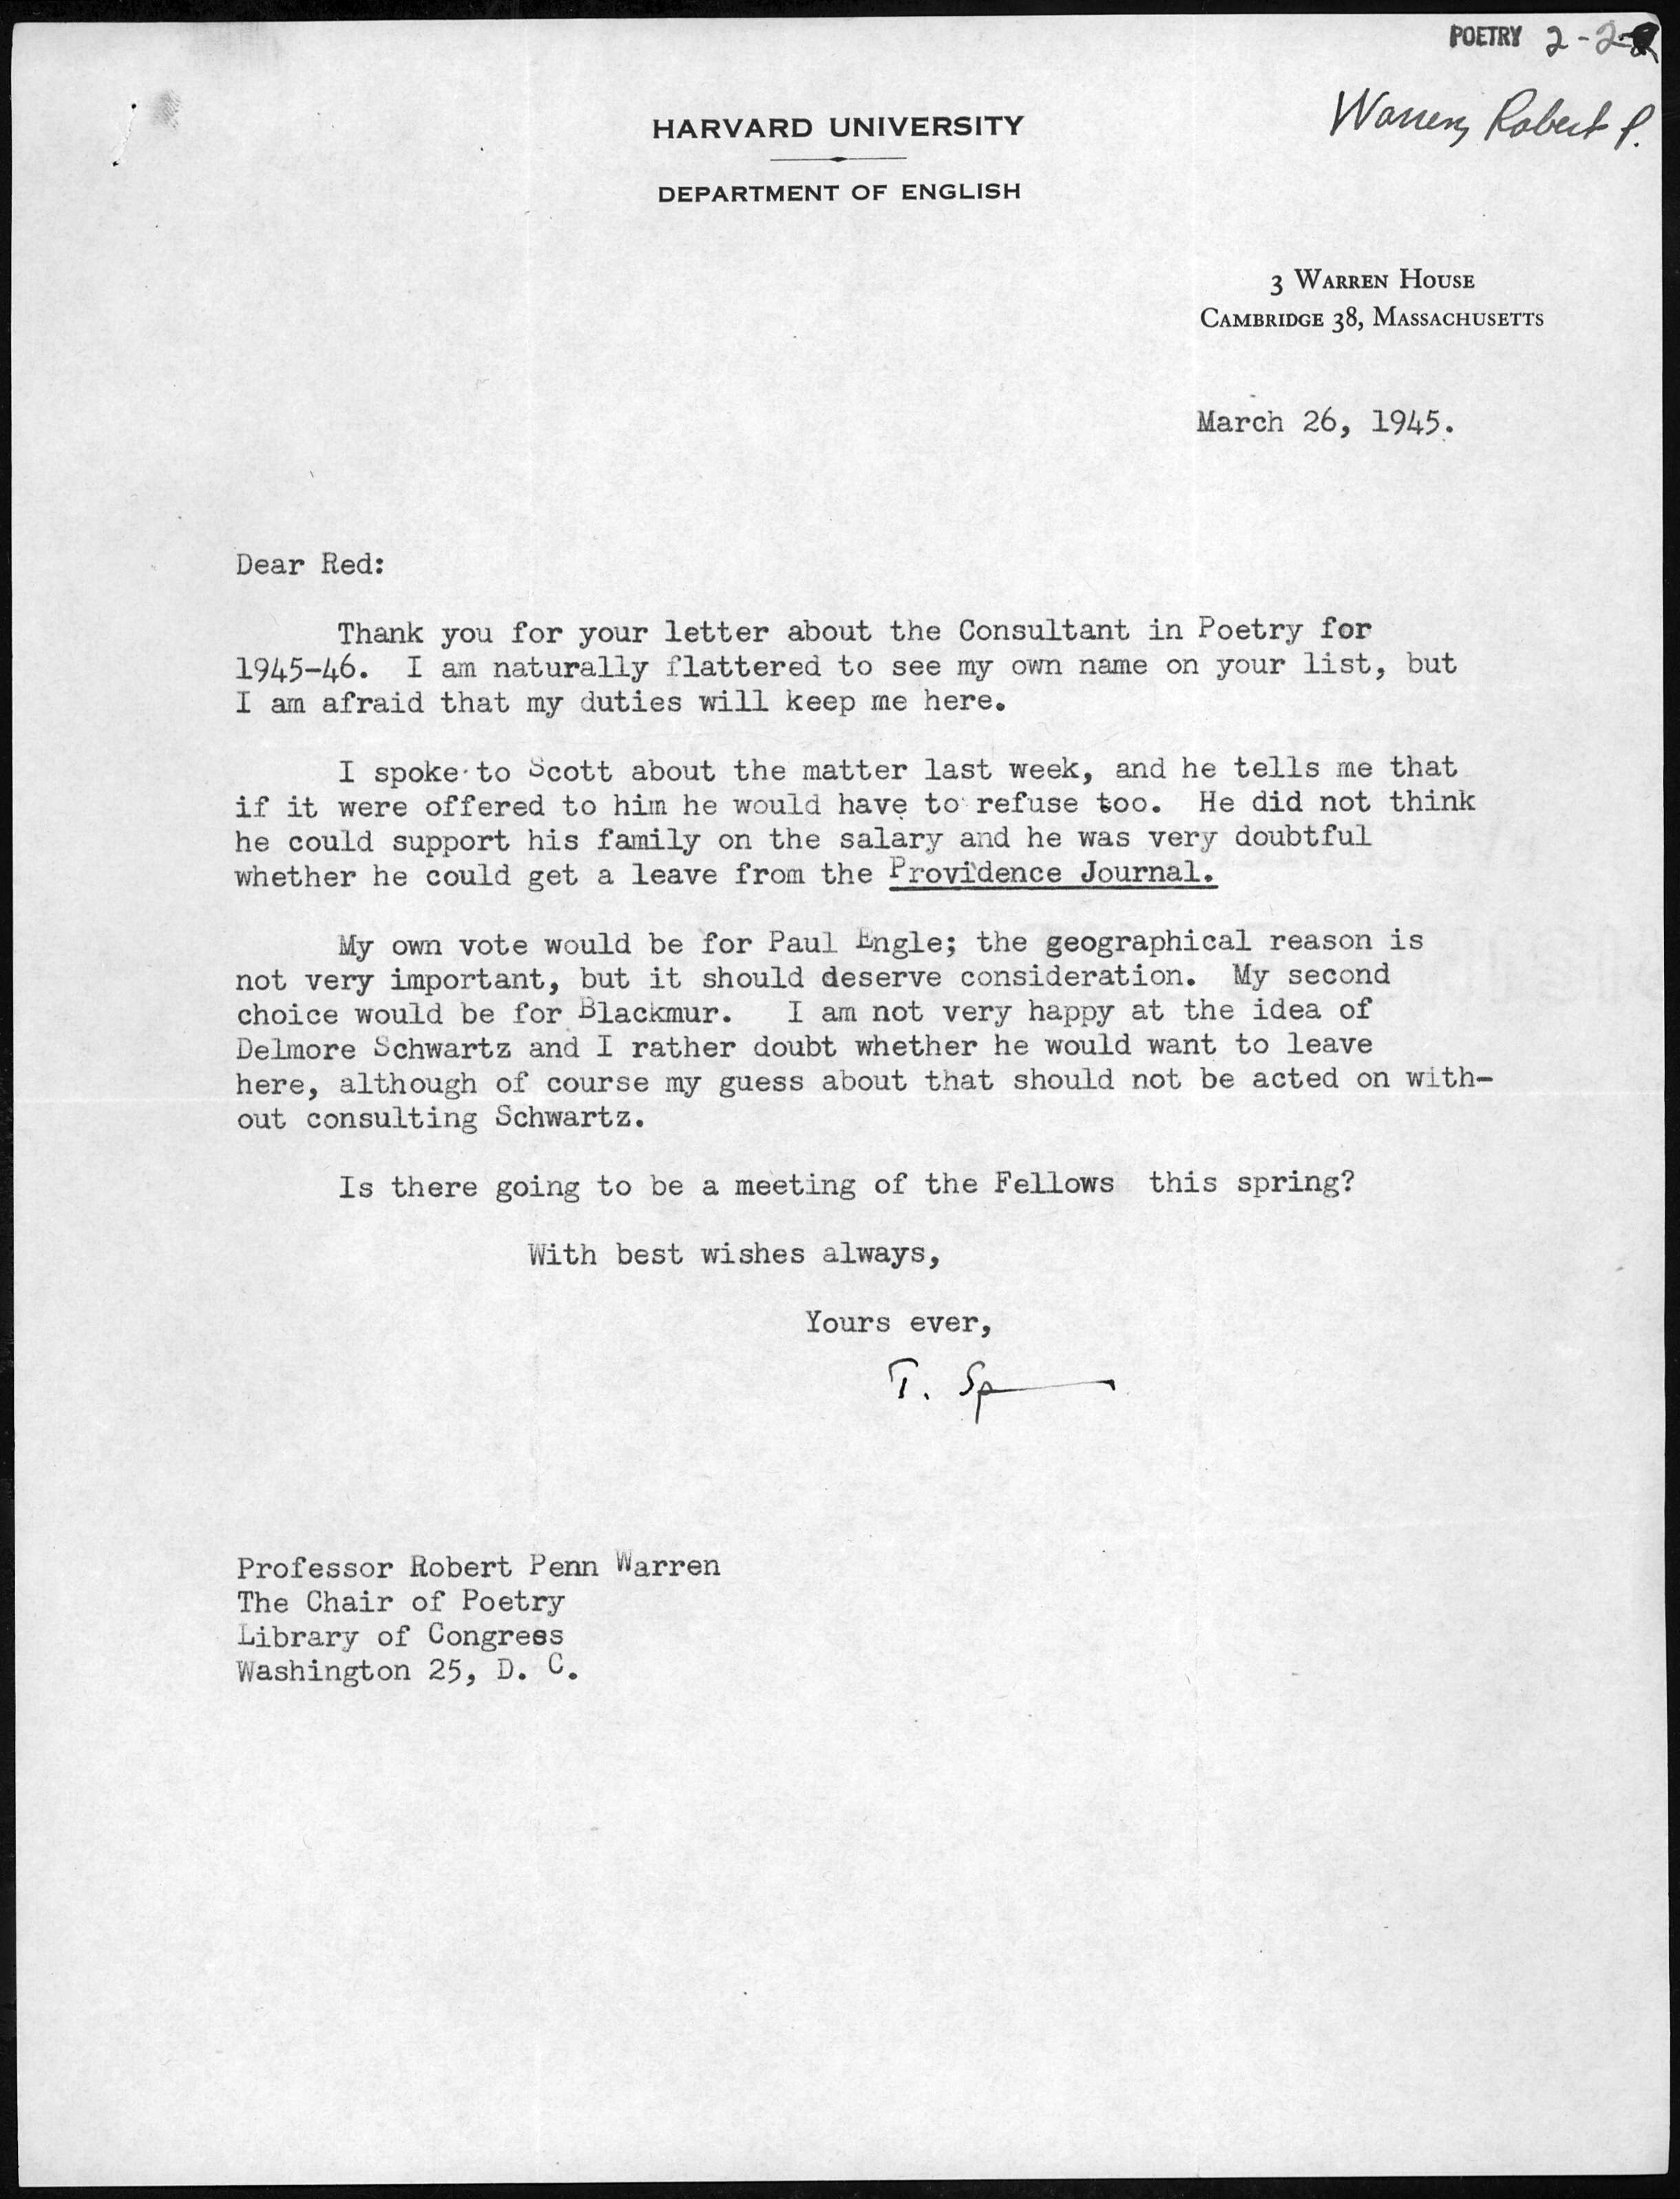 Letter from Theodore Spencer to Robert Penn Warren, March